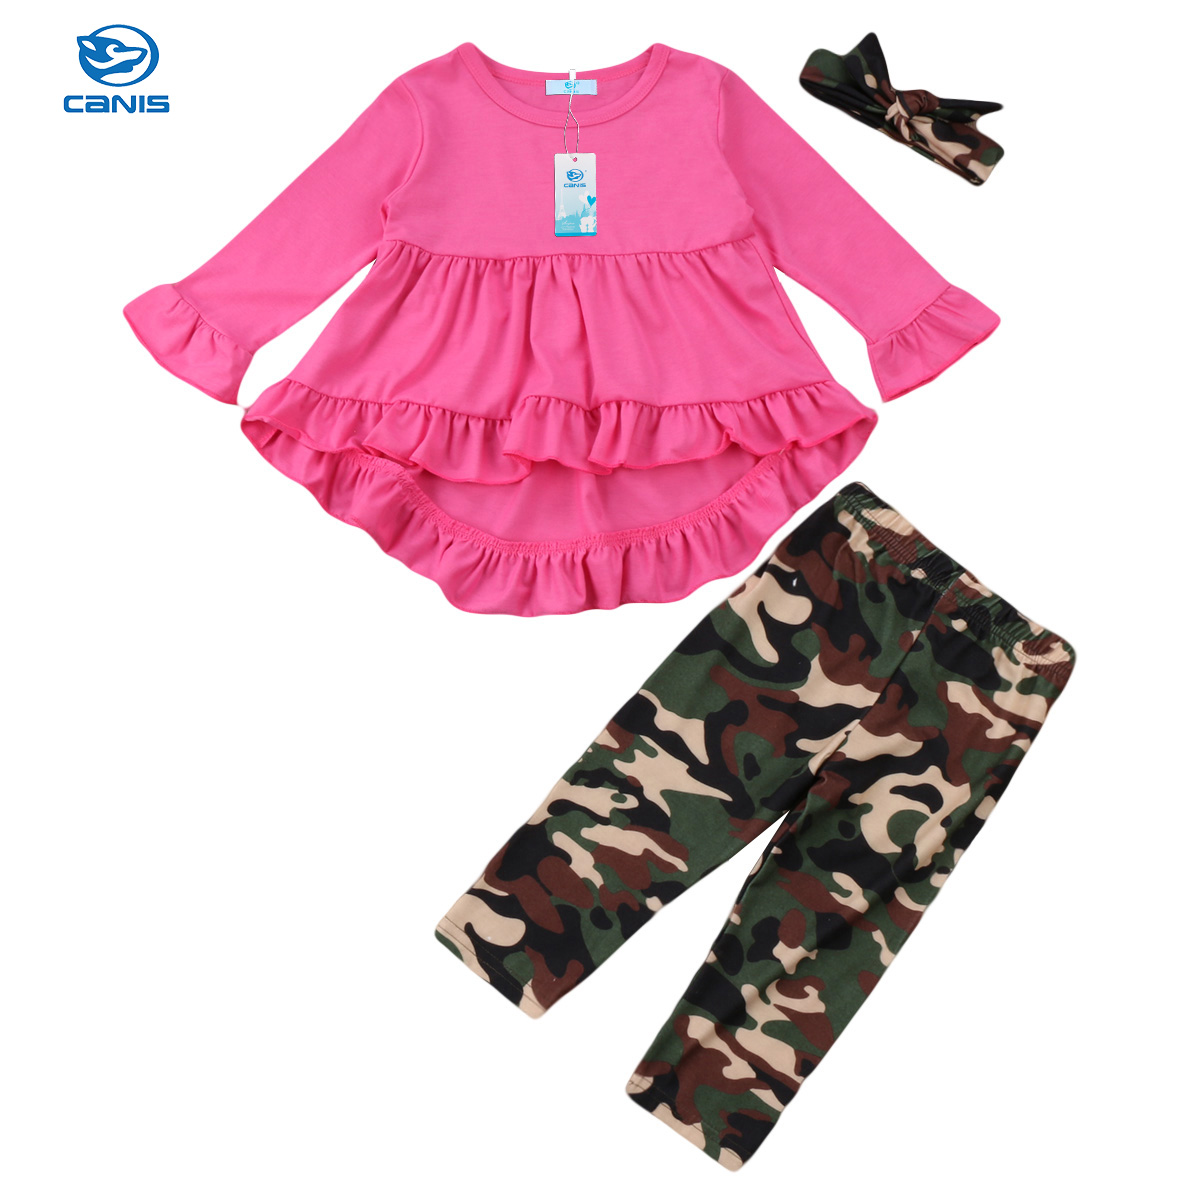 cf56e5214 3PCS Kids Baby Girls Camouflage Outfits Clothes Rose Red Tops  T-Shirt+Leggings+Headband 3pcs Clothing Set Casual